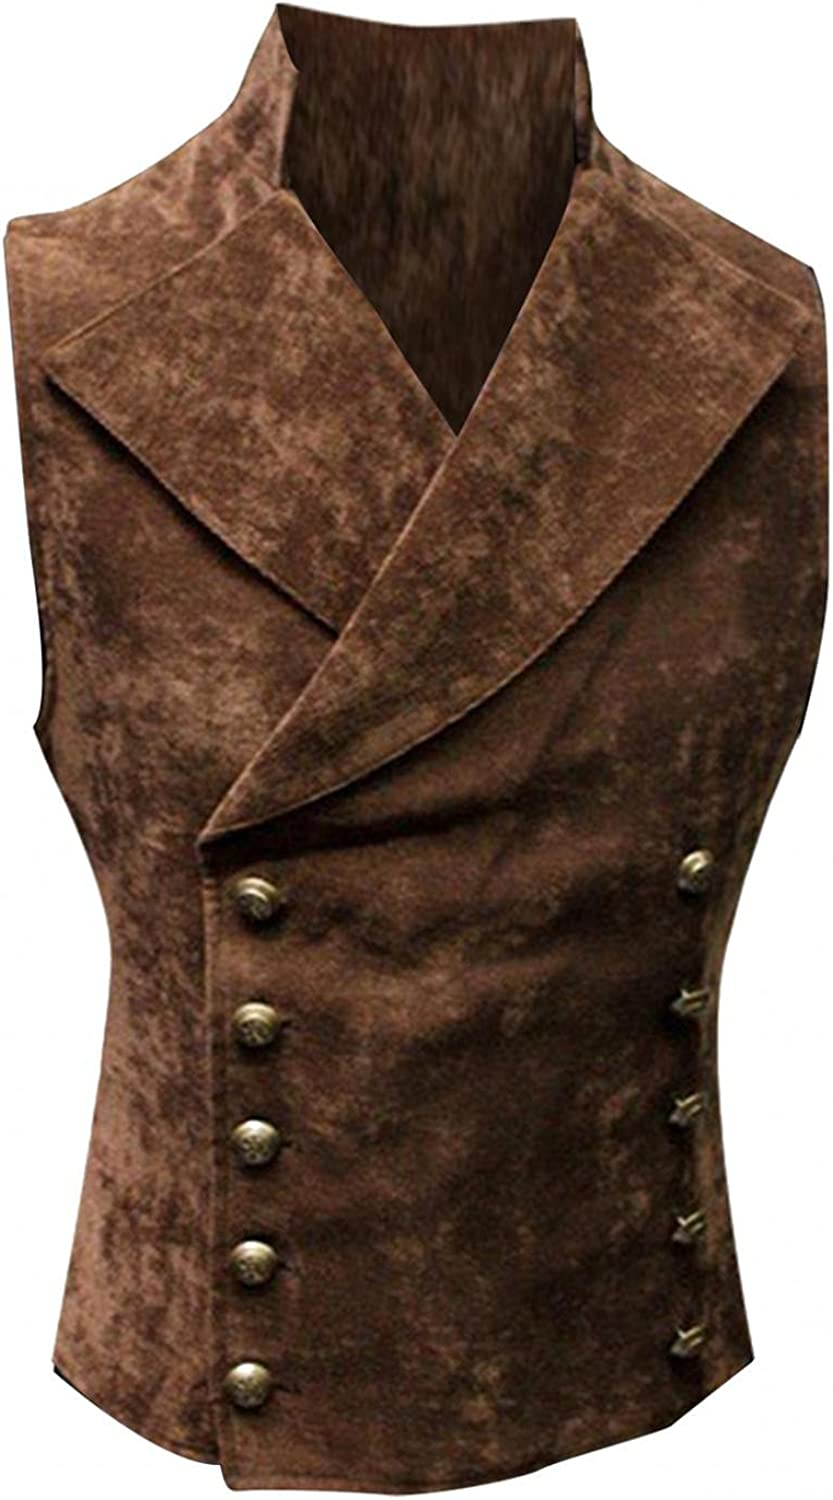 Men's Retro Vest Suit Coat Casual Slim Fit Western Cowboy Waistcoat with Button to wear with Dress Shirt